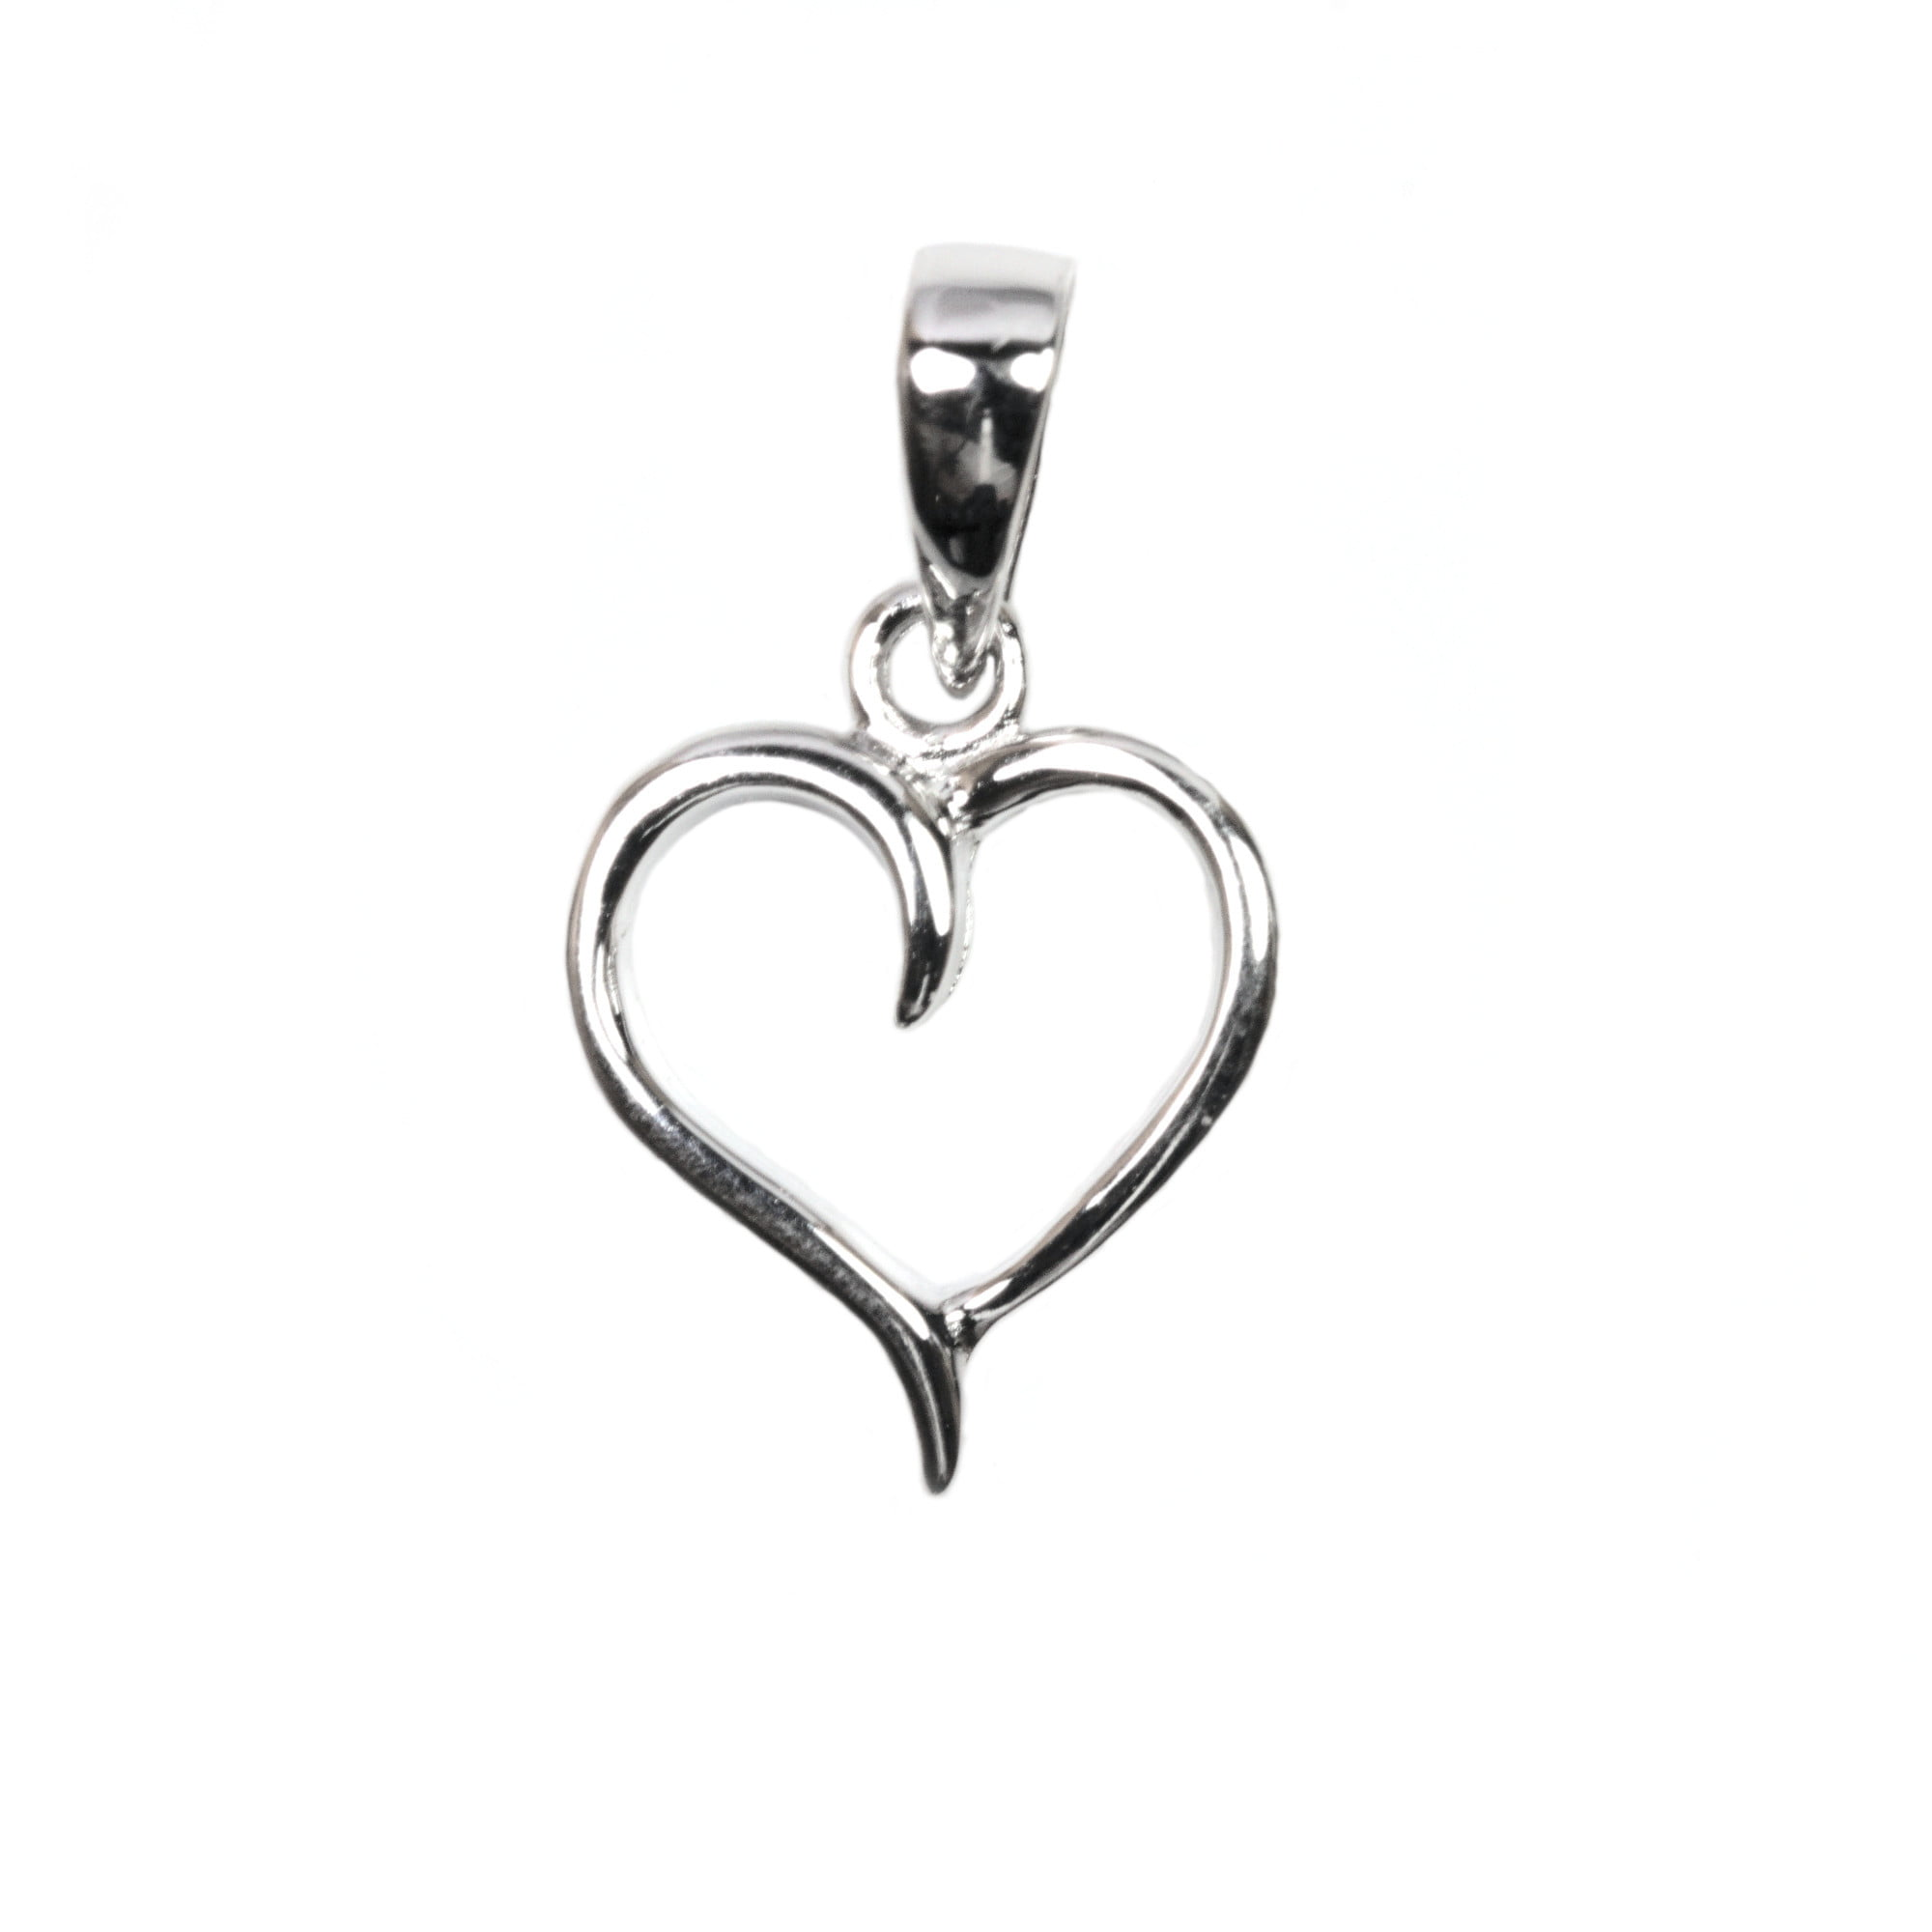 Open heart charm pendant in sterling silver